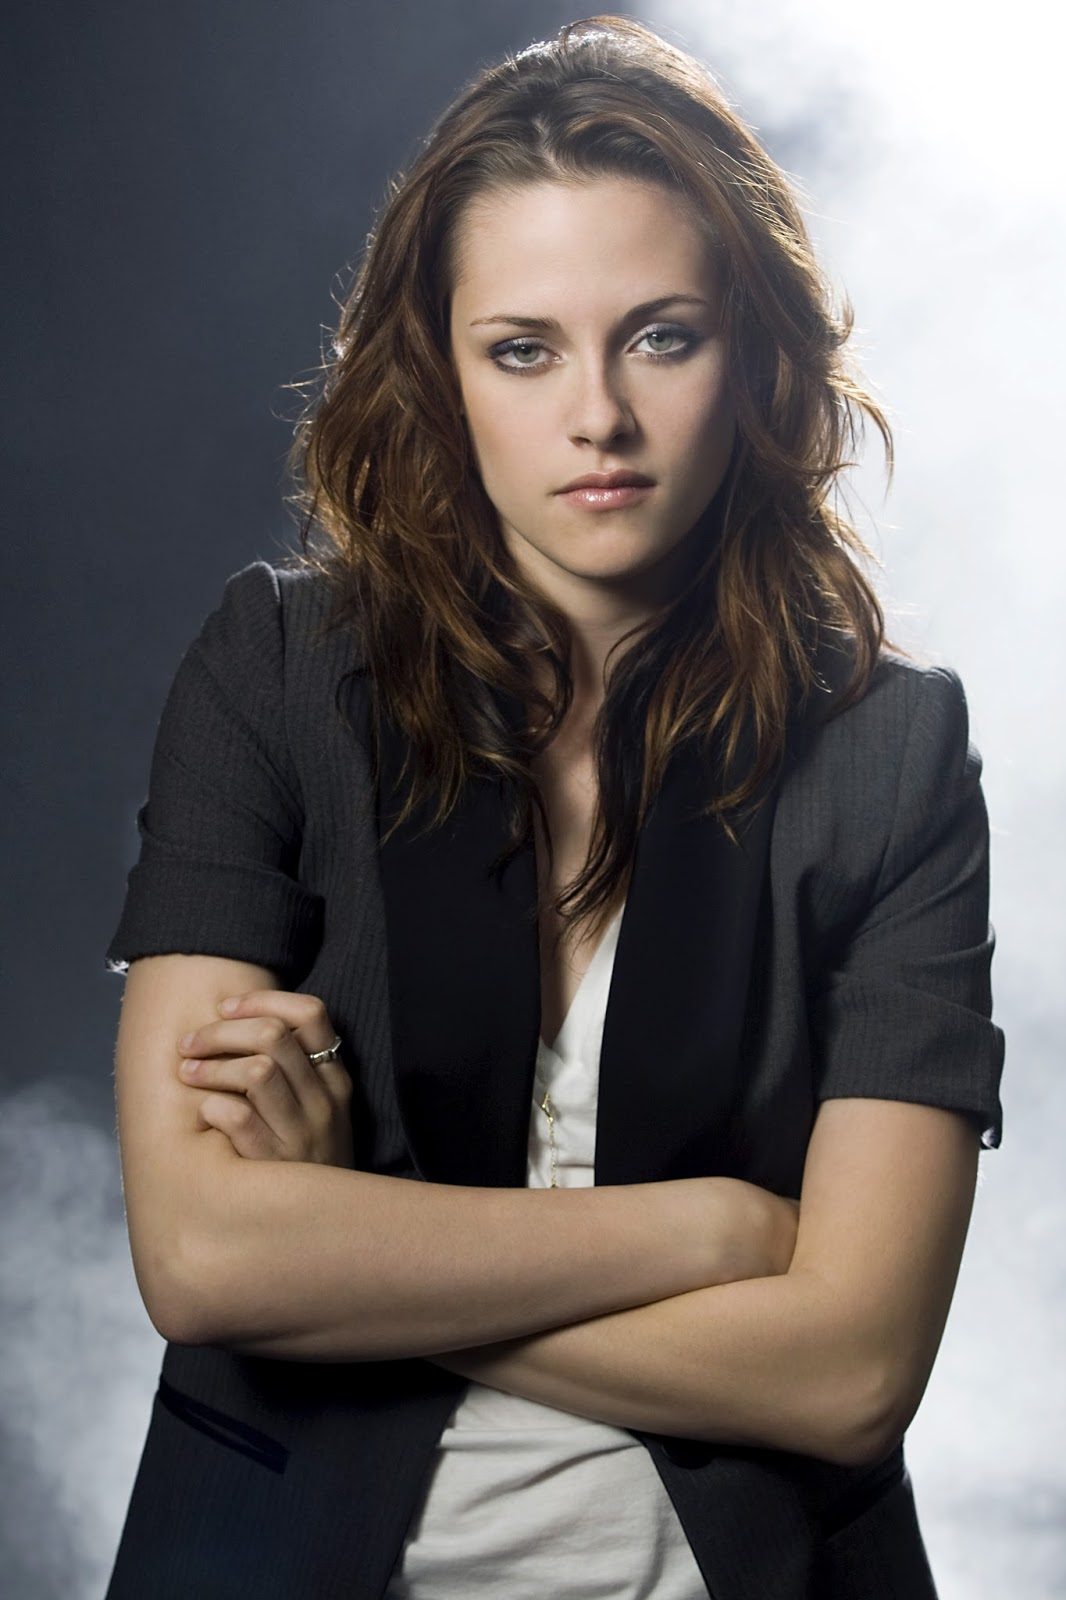 Actress, @ Kristen Stewart - Twilight Portraits for USA ... Kristen Stewart